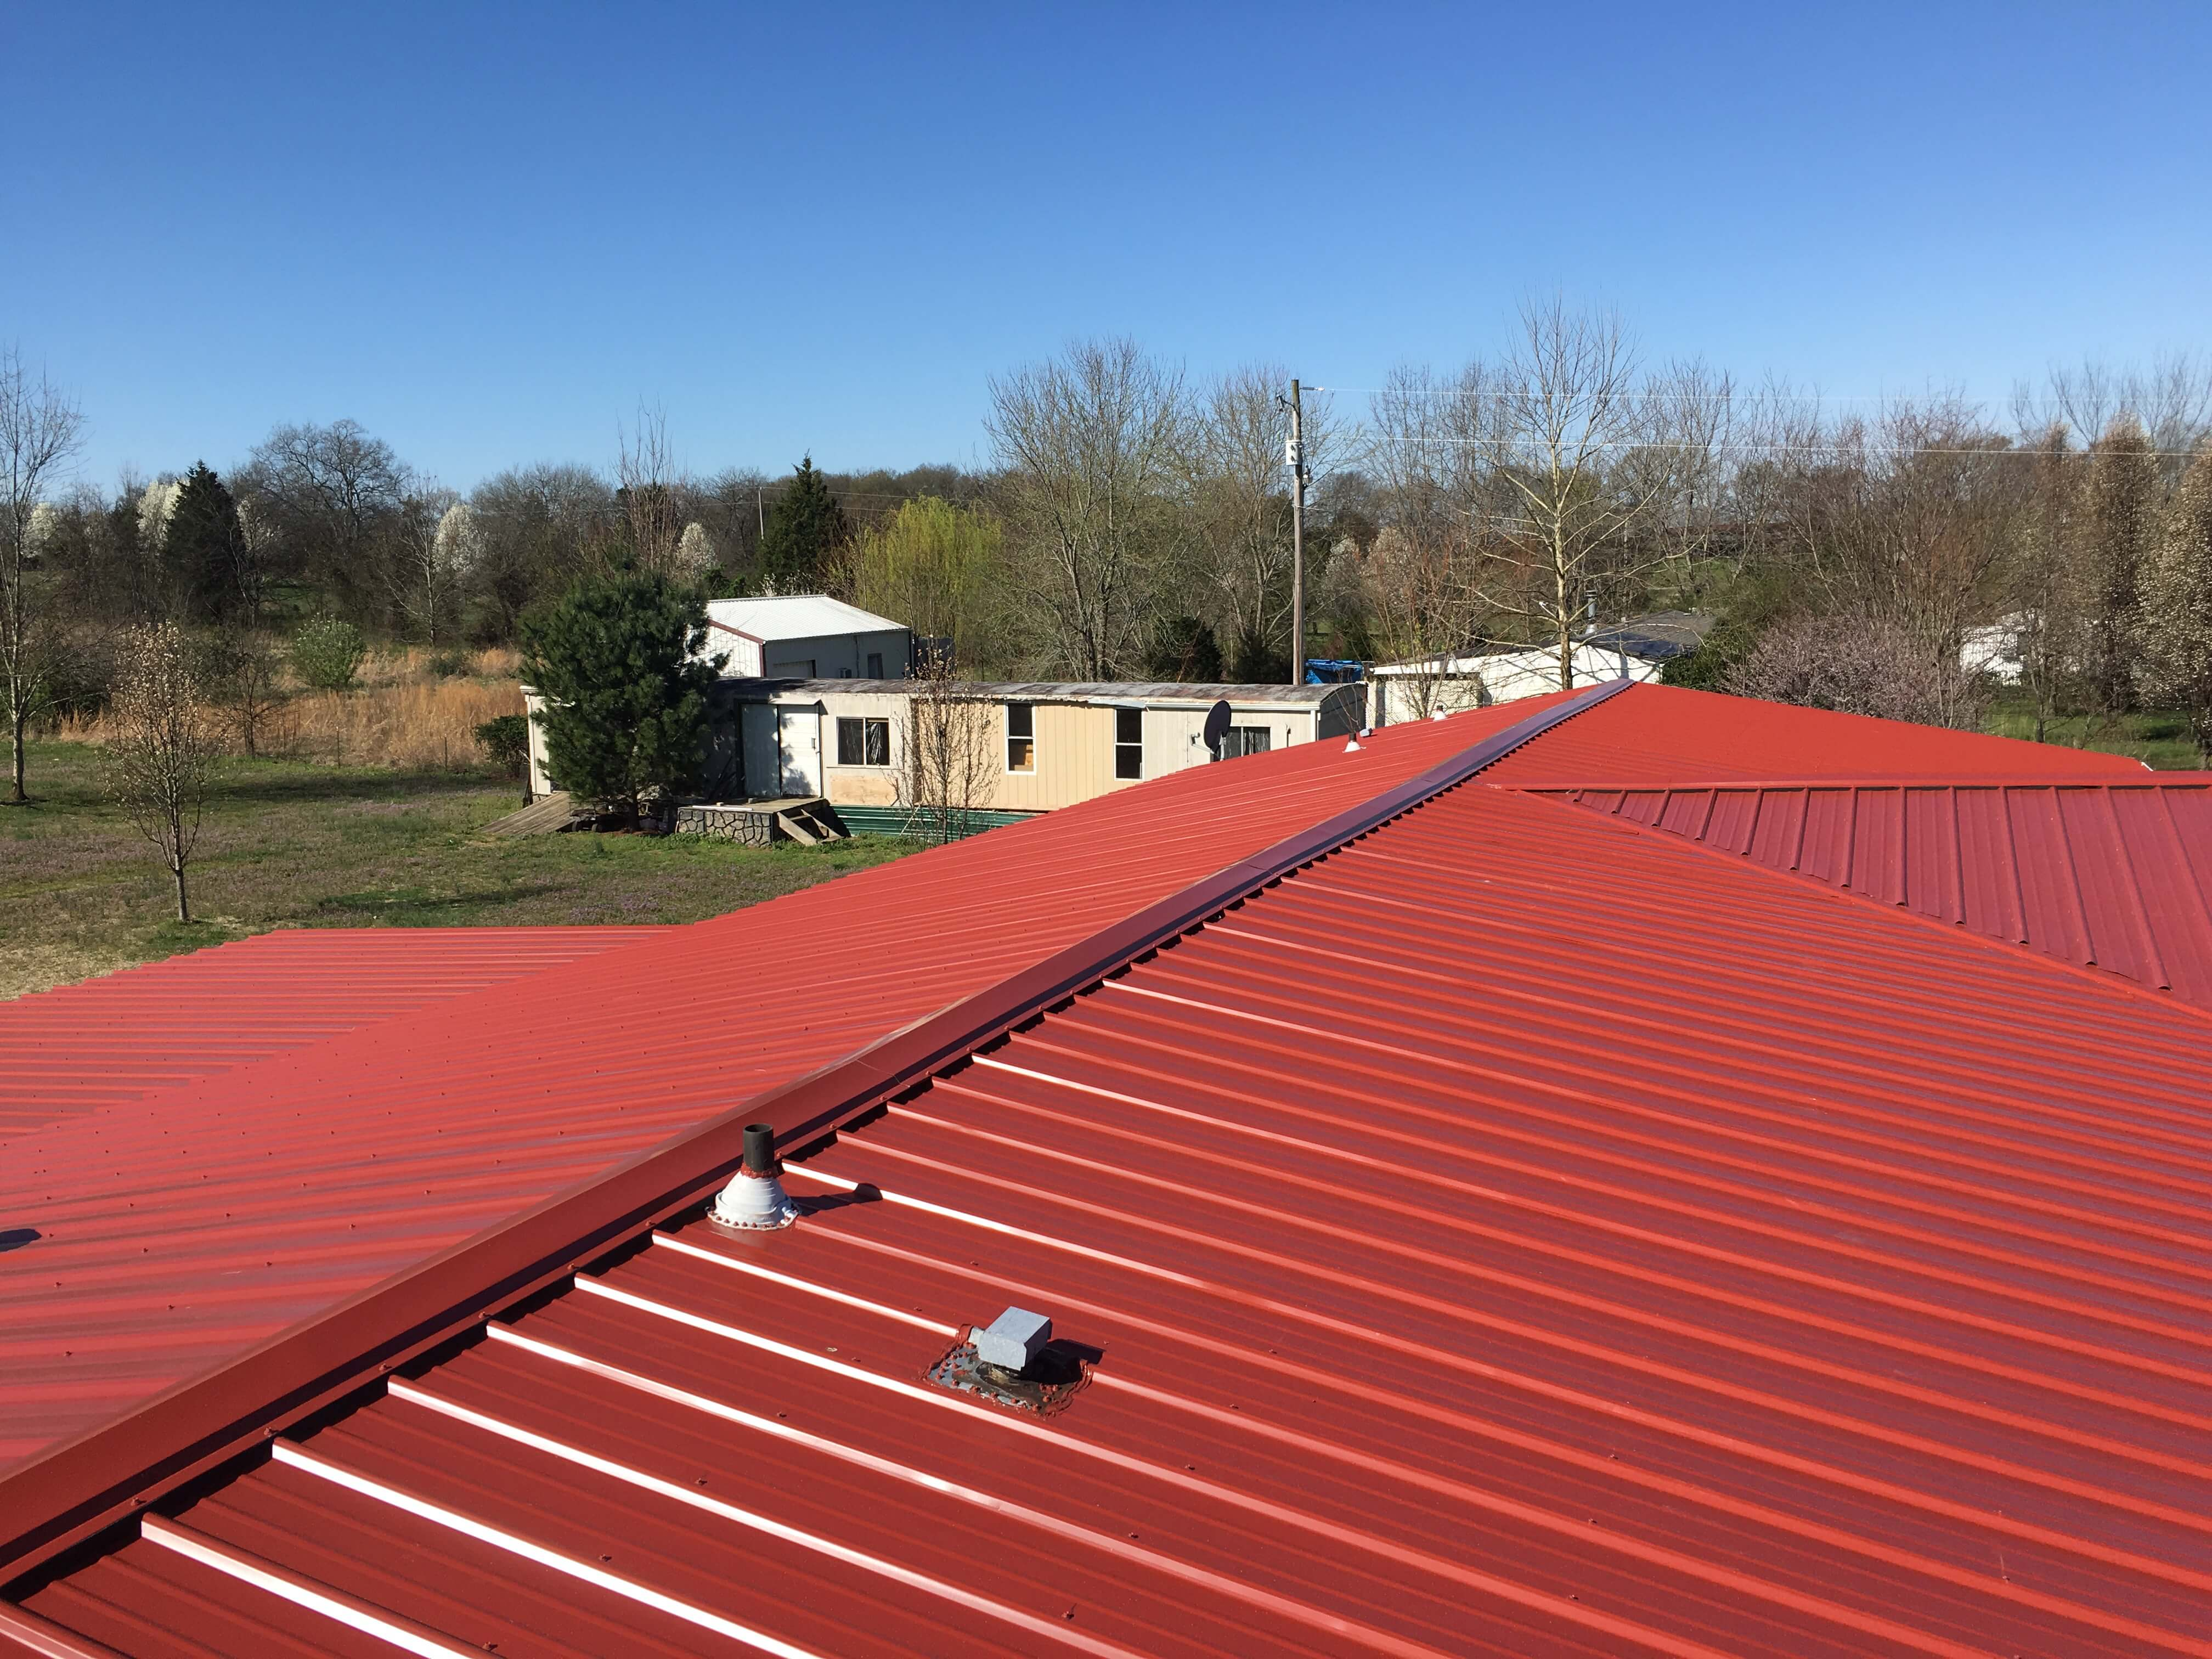 If Youu0027re Paying Less Than Four Times The Cost Of An Asphalt Roof Then The  Value Of A Commercial Metal Roof Is Greater.